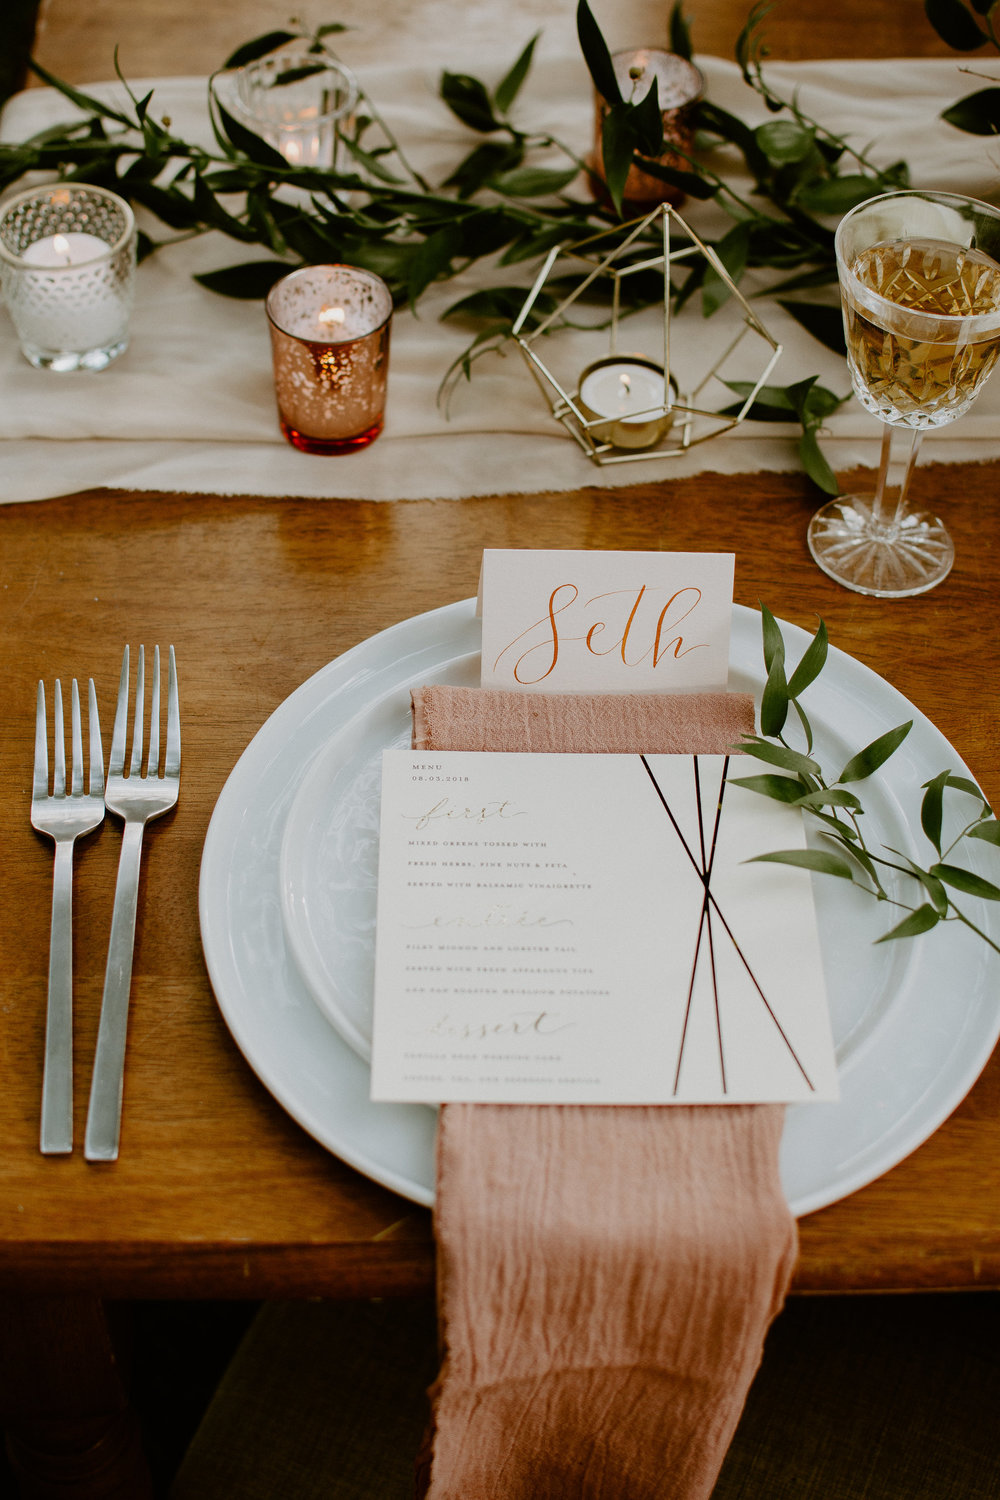 terracotta cotton gauze napkins and blush chiffon table runner